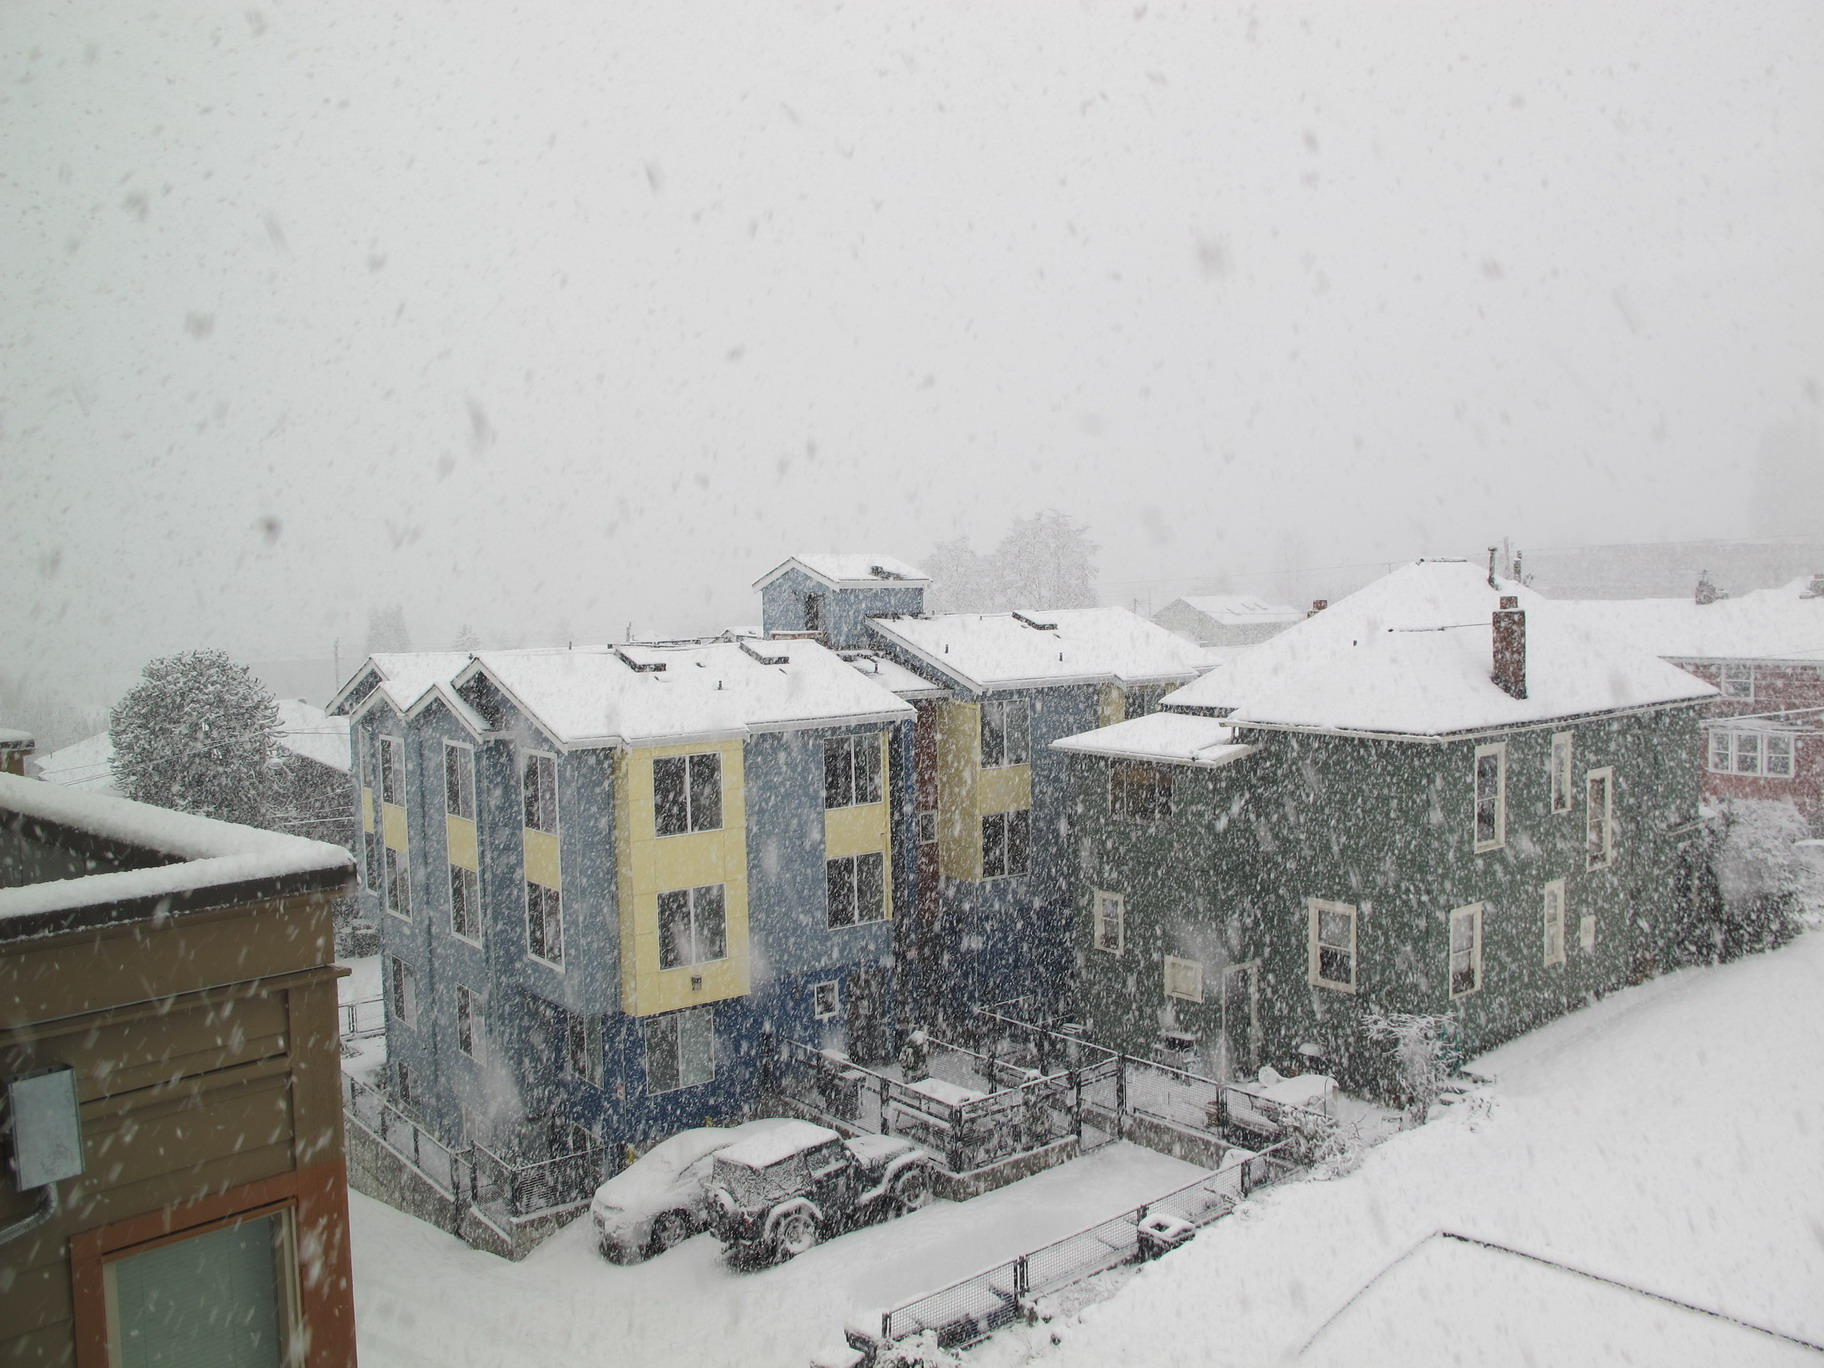 Seattle snow, 2012-01-15, from my apartment. Where's the city?